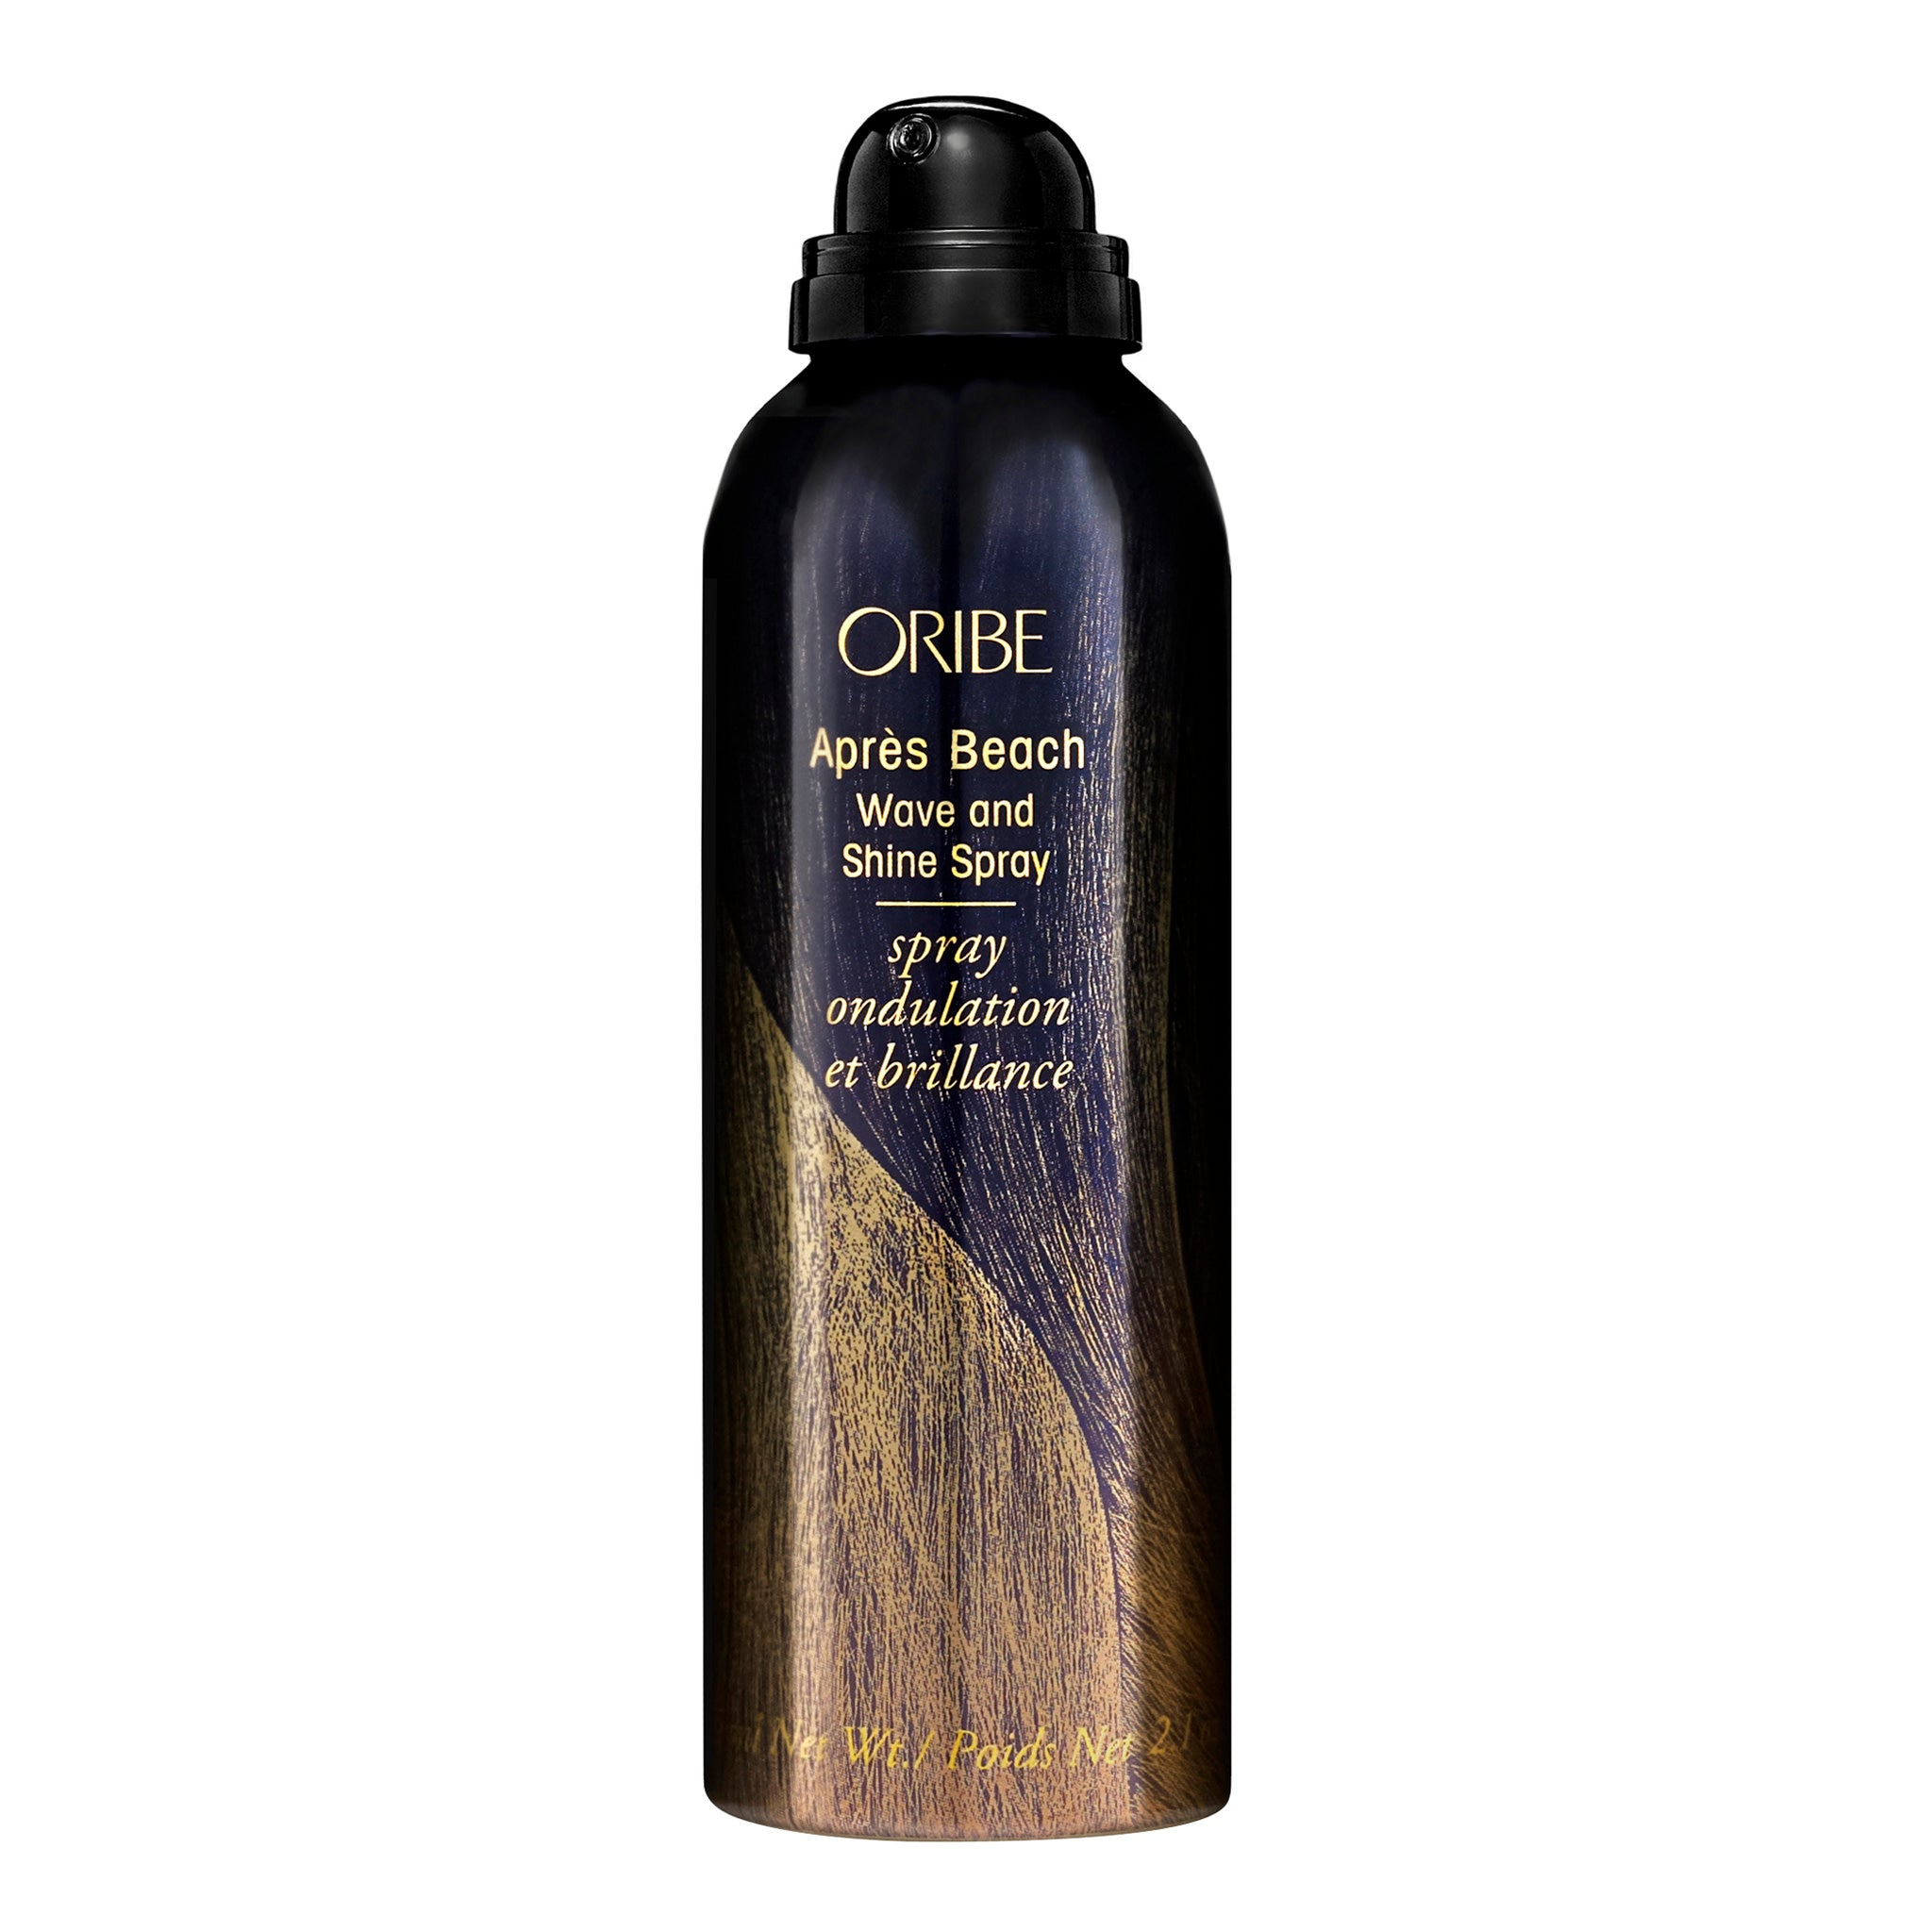 Apres Beach Wave And Shine Spray